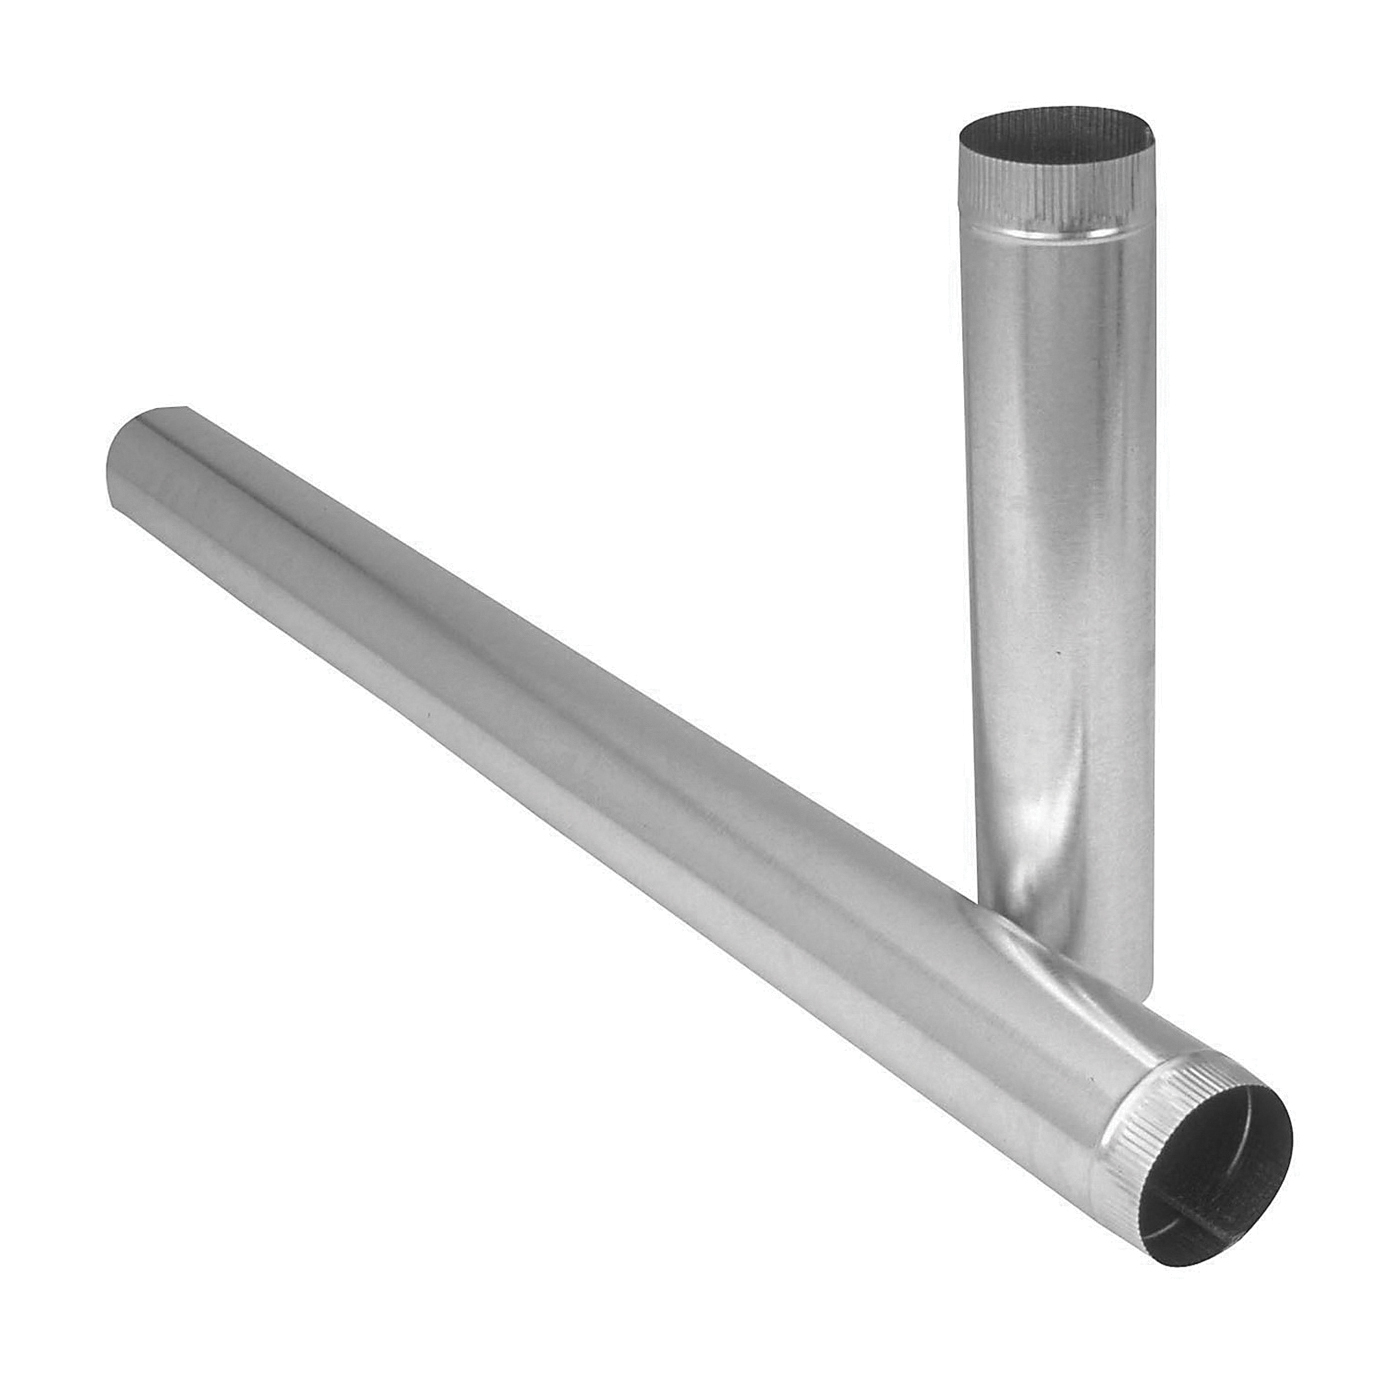 Picture of Imperial GV0355 Duct Pipe, 4 in Dia, 24 in L, 26 Gauge, Galvanized Steel, Galvanized